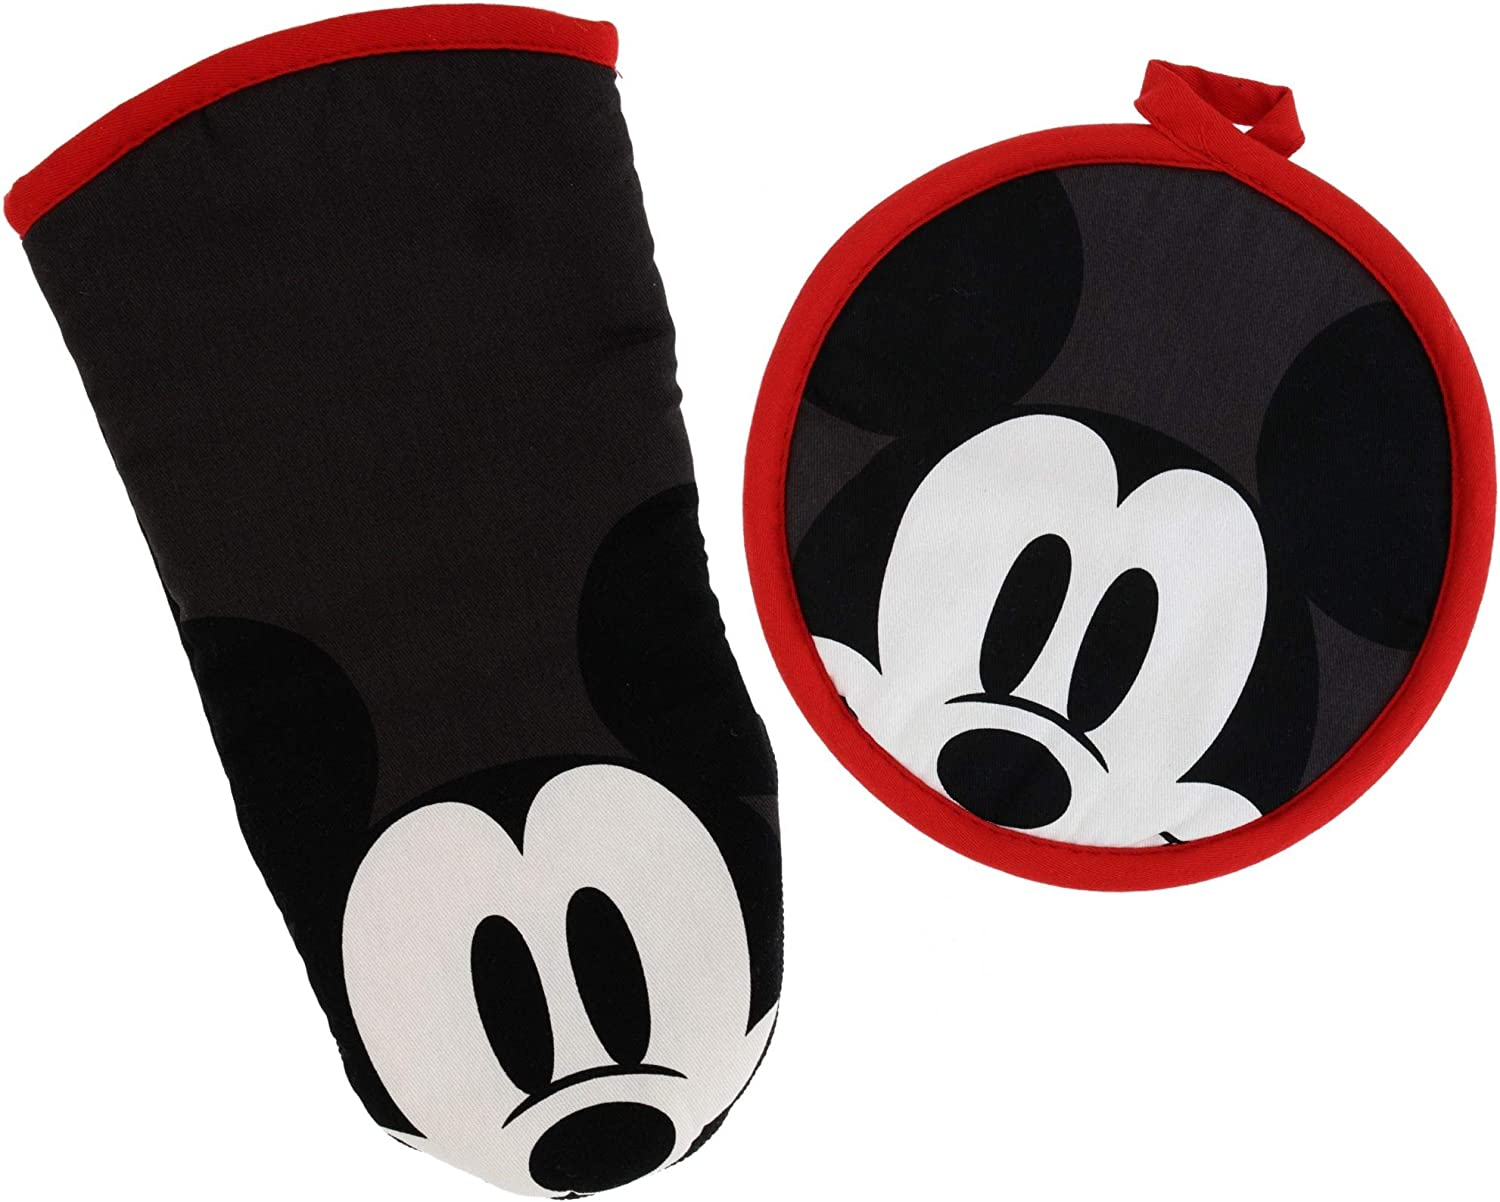 Best Brands Disney Kitchen Puppet Oven Mitt/Glove and Circle Potholder Set w/Neoprene for Easy Non-Slip Gripping- Protect Your Hands in The Kitchen - Heat Resistant Kitchen Accessories- Sneaky Mickey